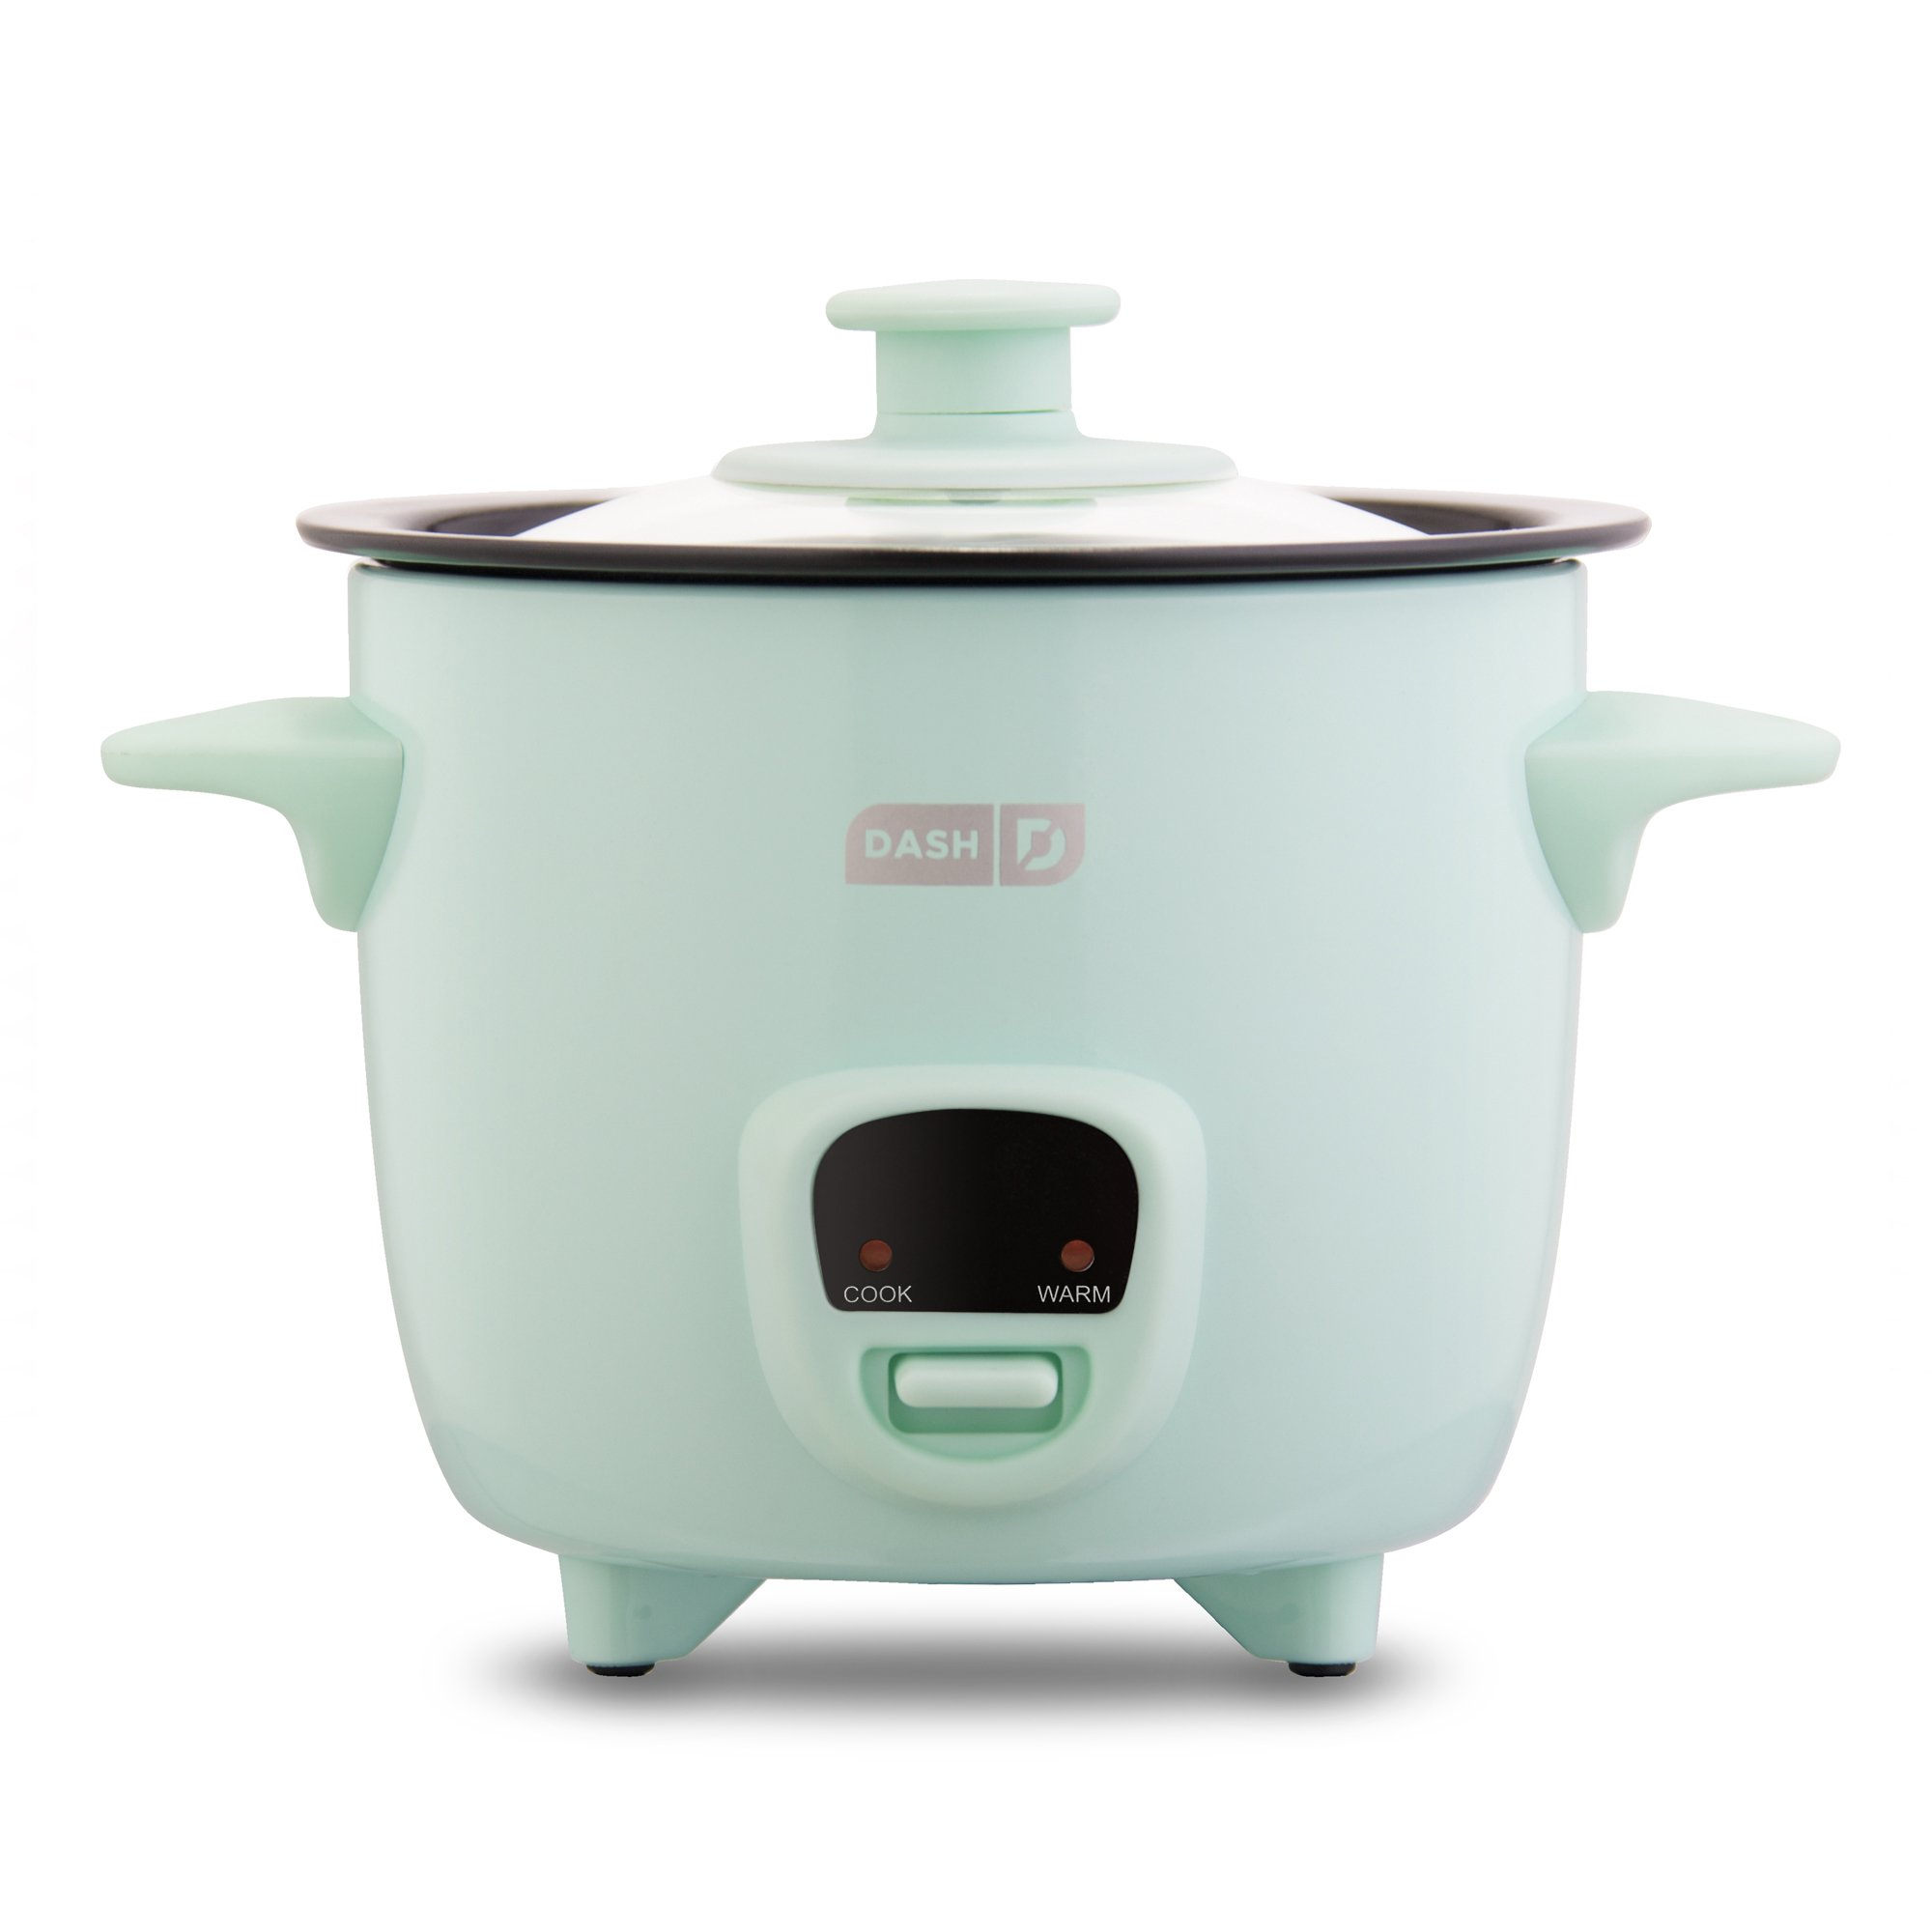 Dash DRCM200GBAQ04 Mini Rice Cooker Steamer with Removable Nonstick Pot, Keep Warm Function and Recipe Guide, 2 cups, Great for Soups, Stews, Grains And Oatmeal, Aqua